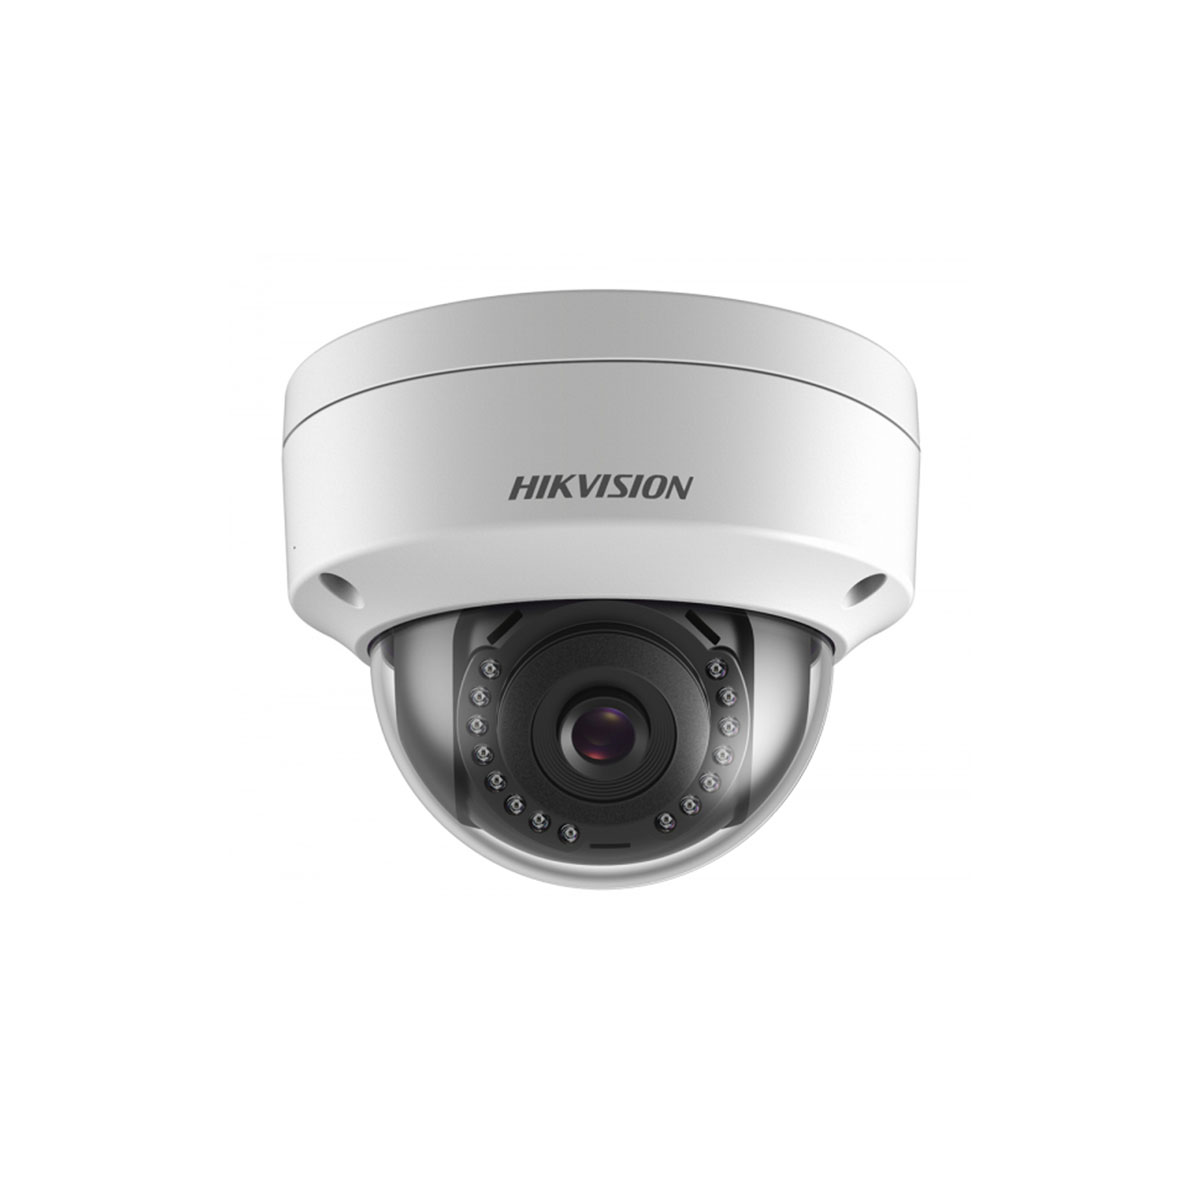 Cámara Hikvision DS-2CD1143G0-I IP Tipo Domo 4MP